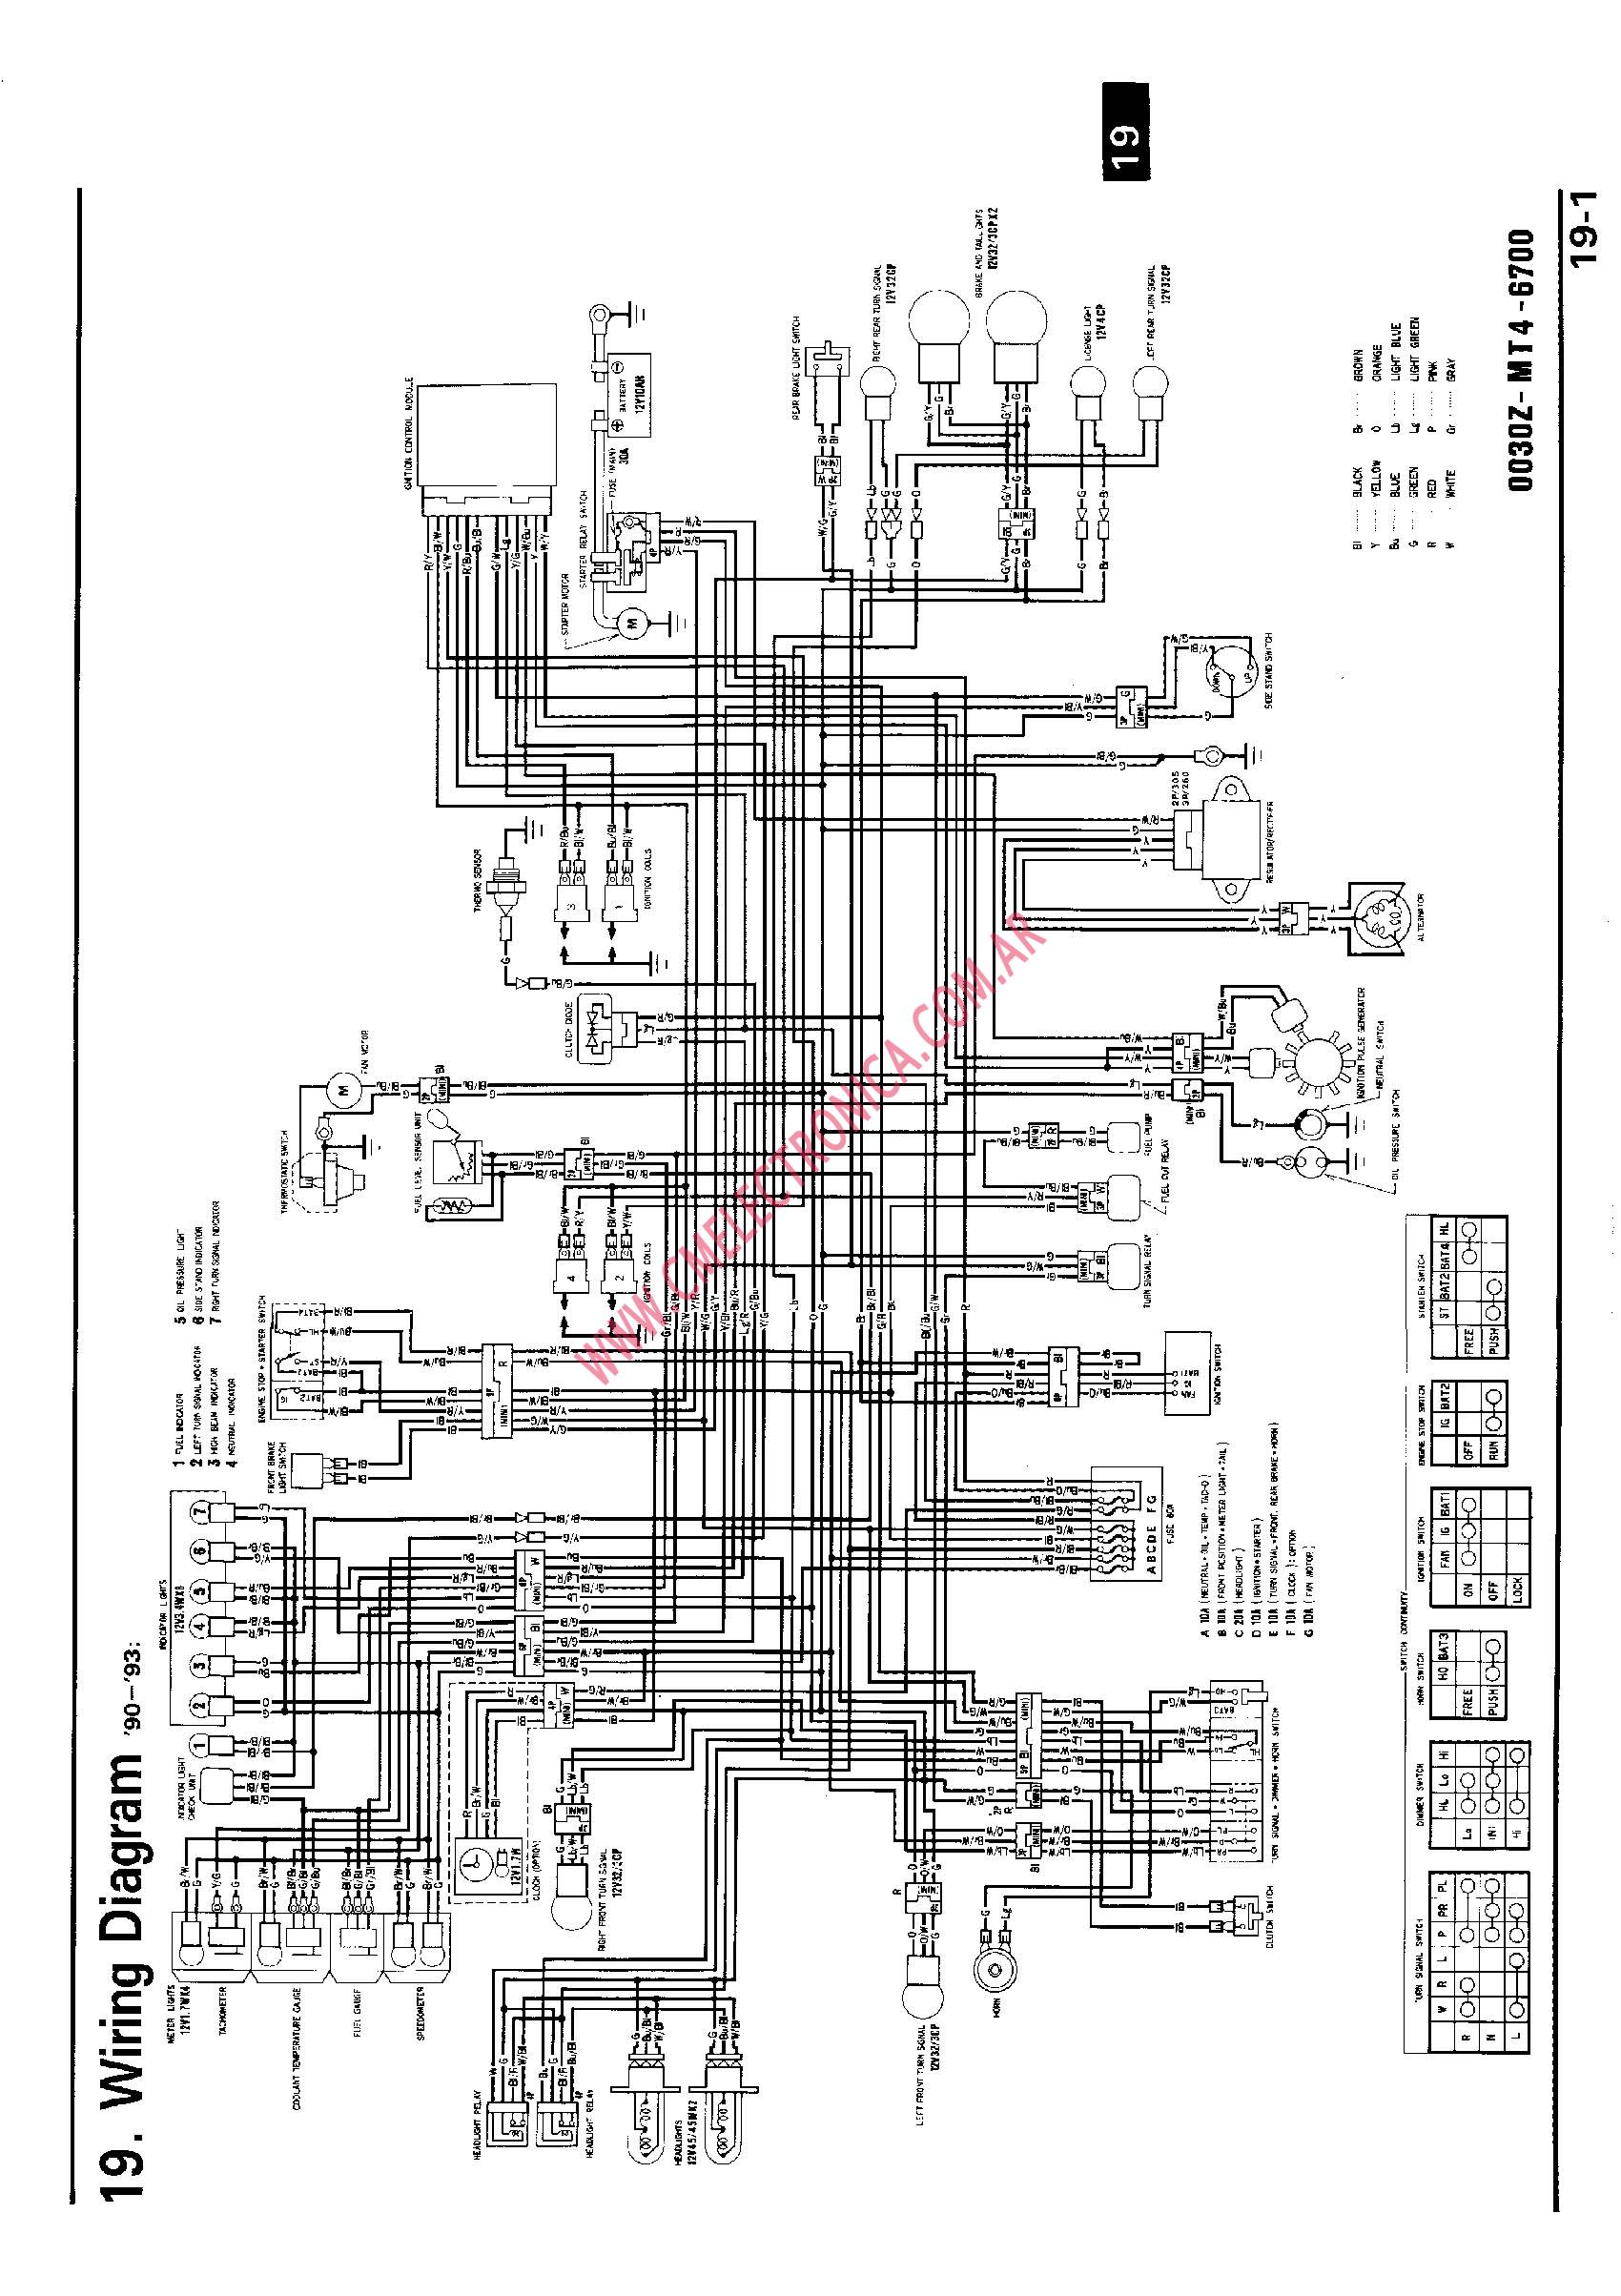 1999 Honda    Cbr       600       Wiring       Diagram         Wiring       Diagram    Database